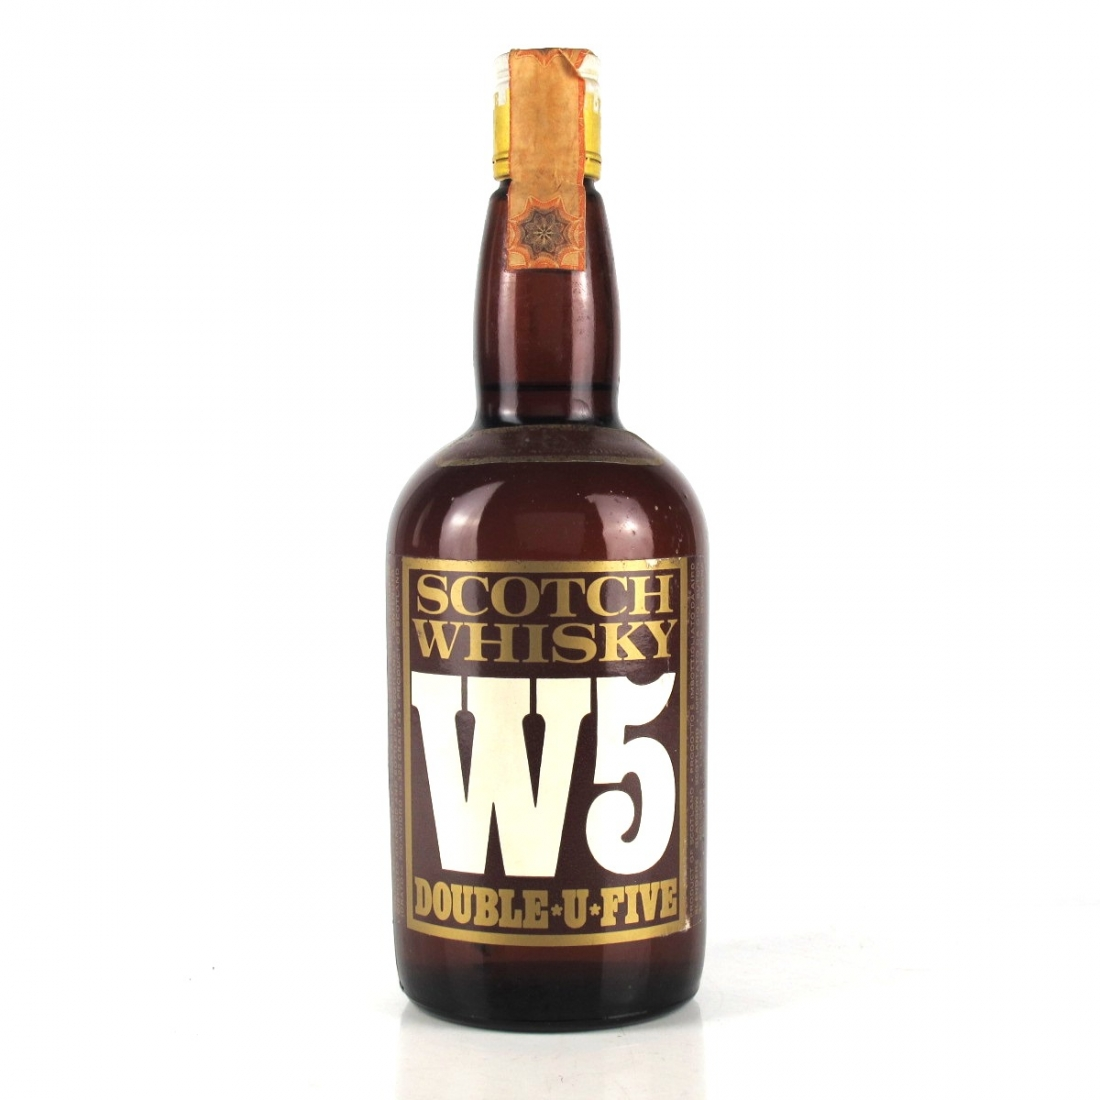 W5 Double U Five Scotch Whisky Circa 1960s